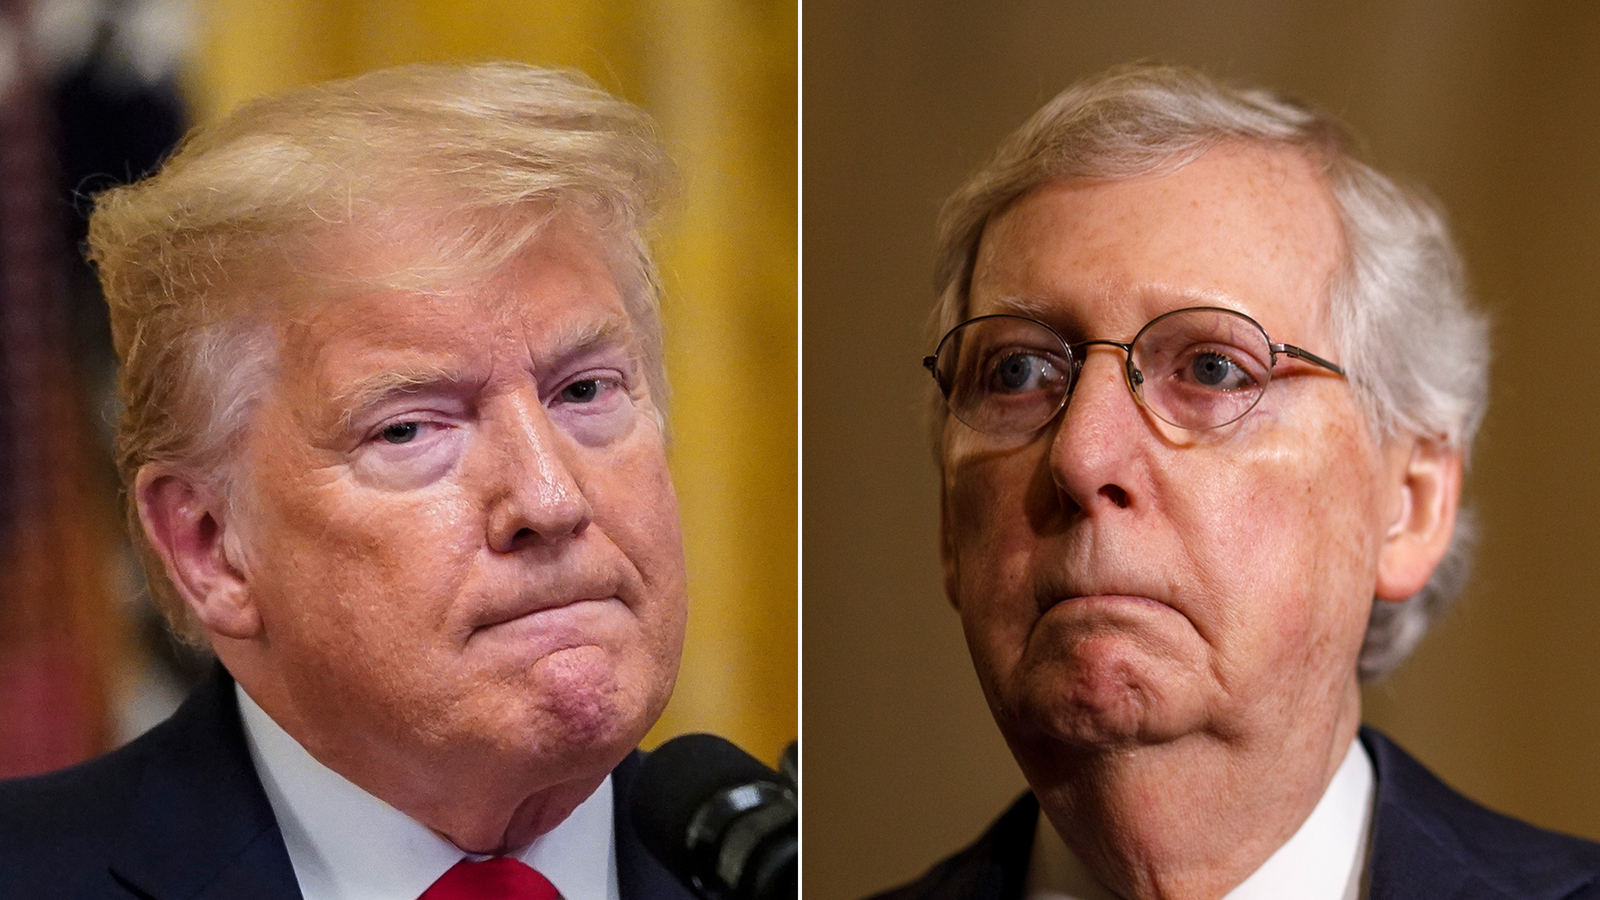 GOP operatives worry Trump will lose both the presidency and Senate majority